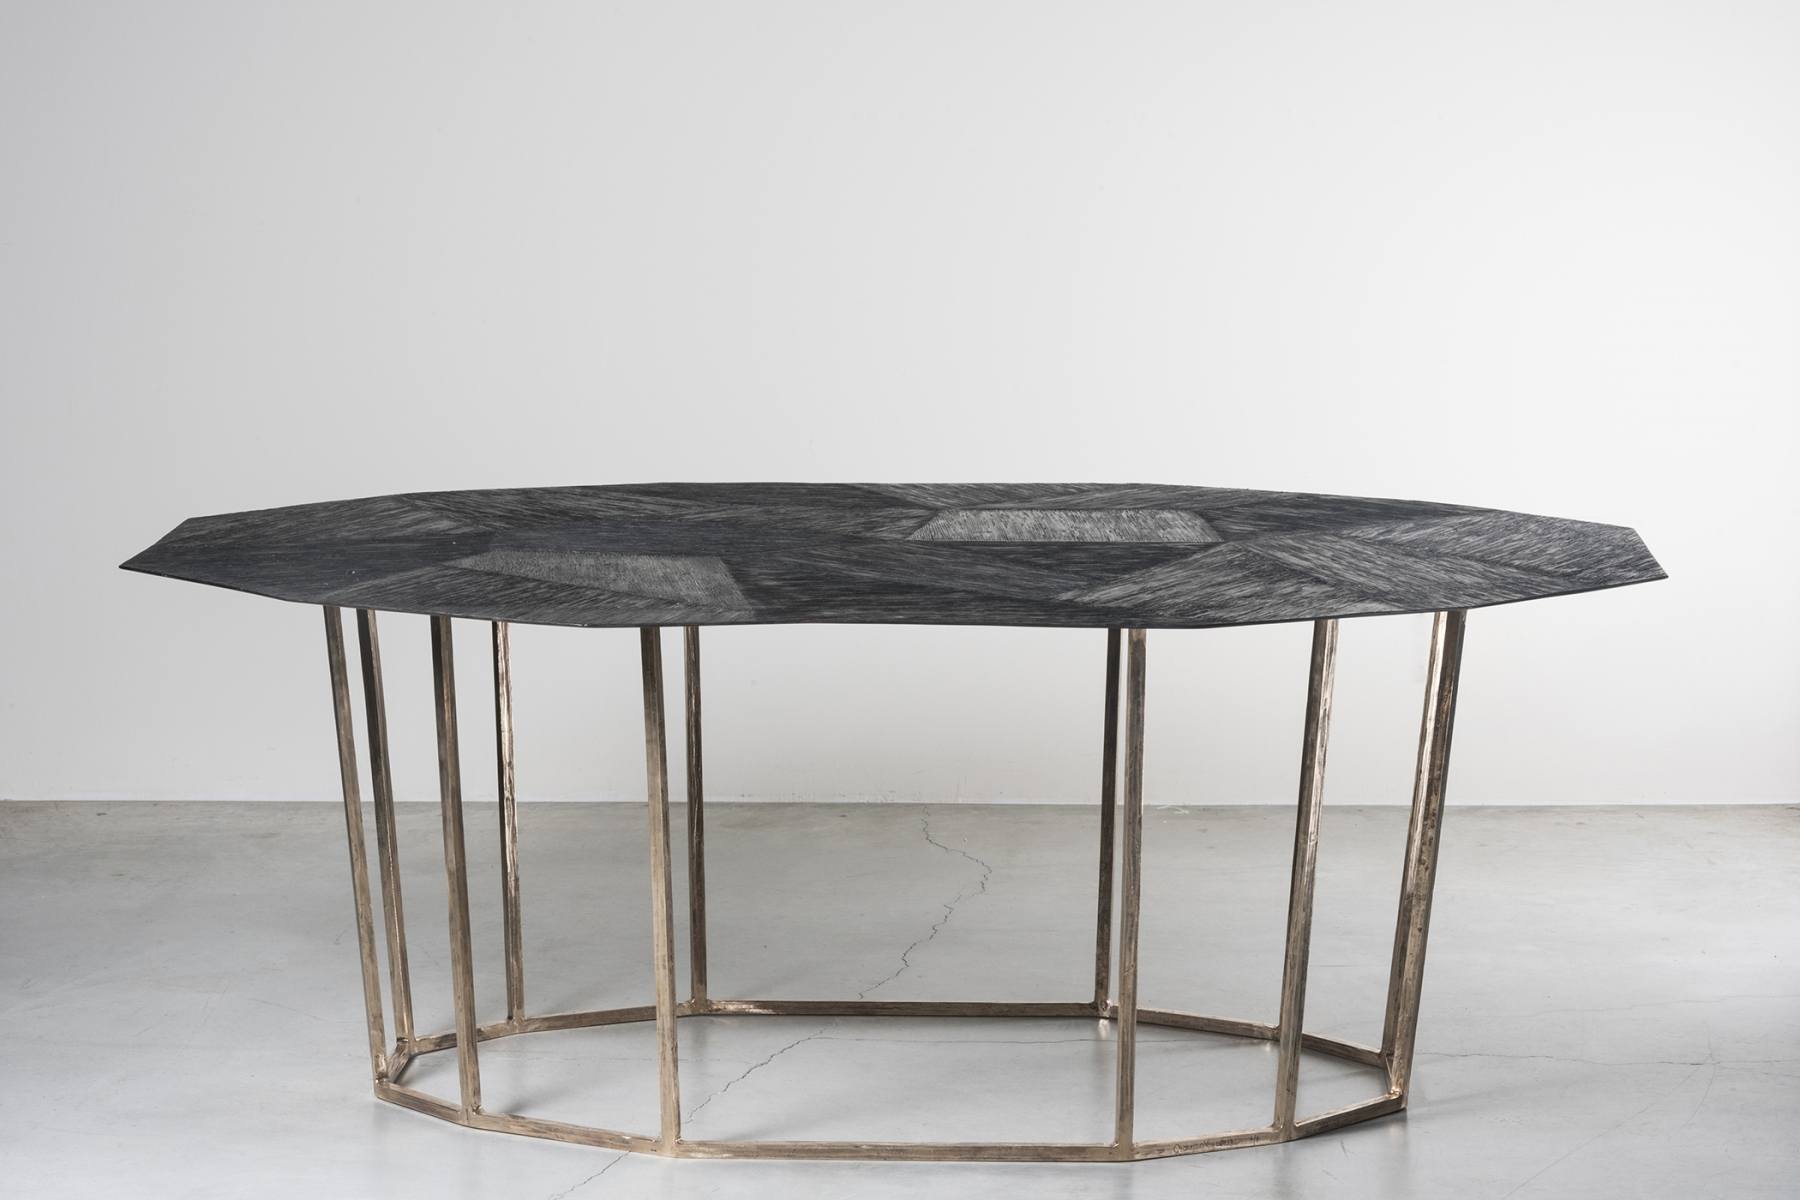 Octagonal low table Osanna Visconti pic-1